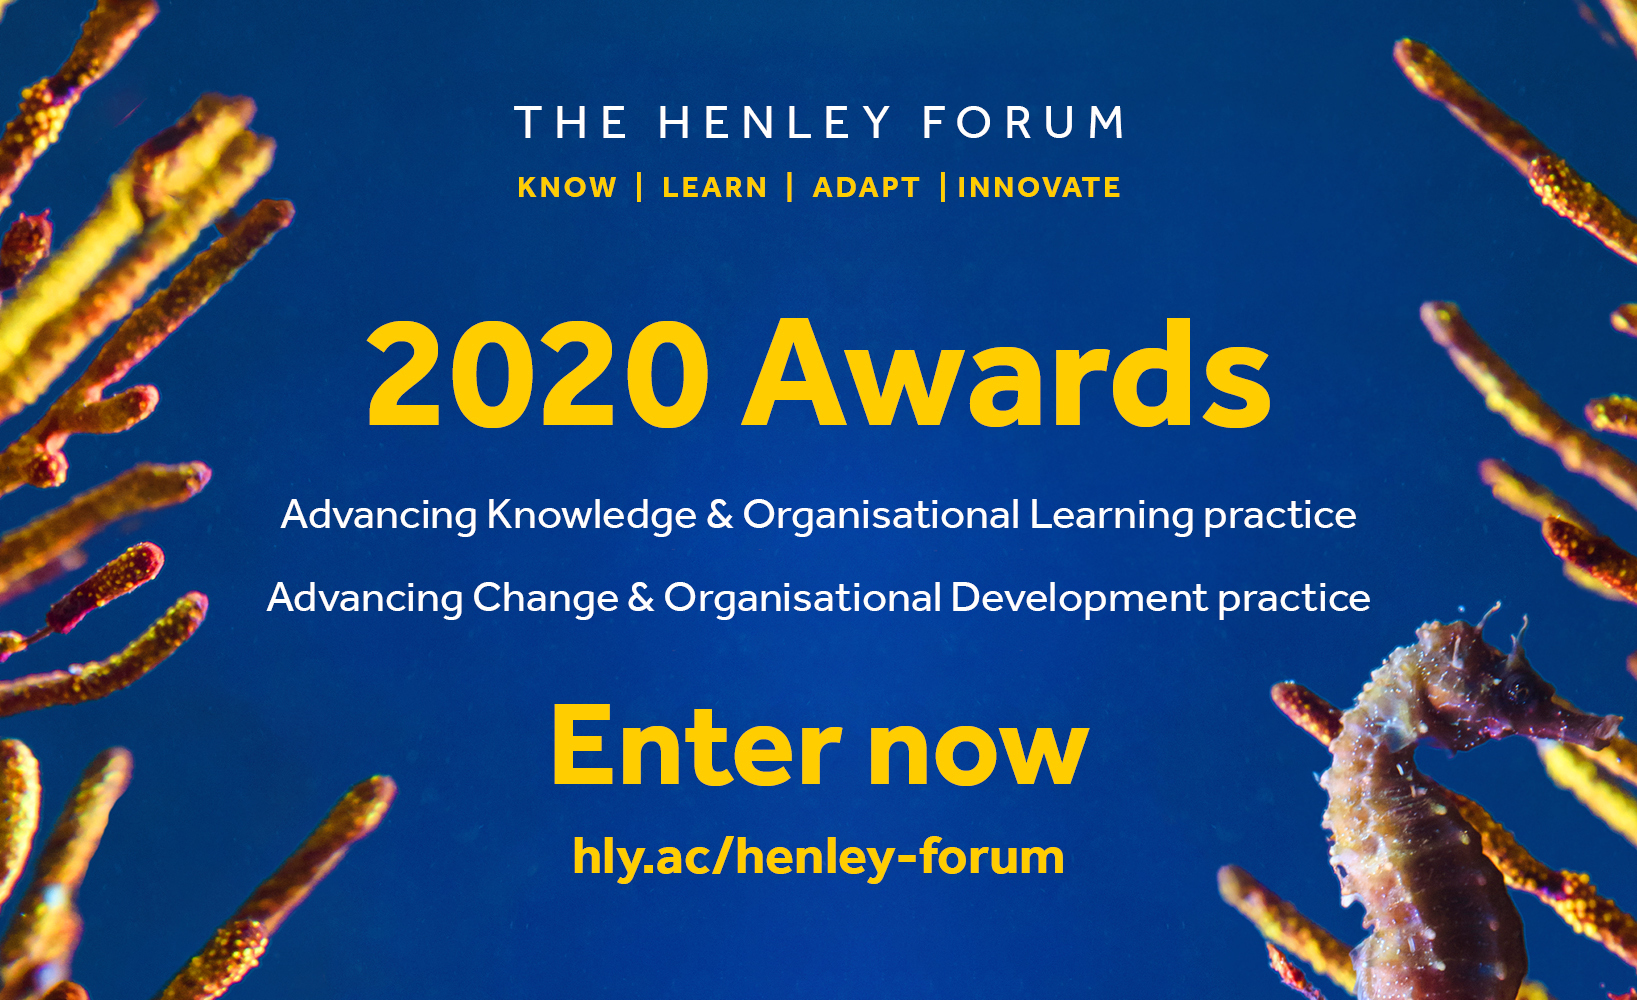 The Henley Forum 2020 Awards